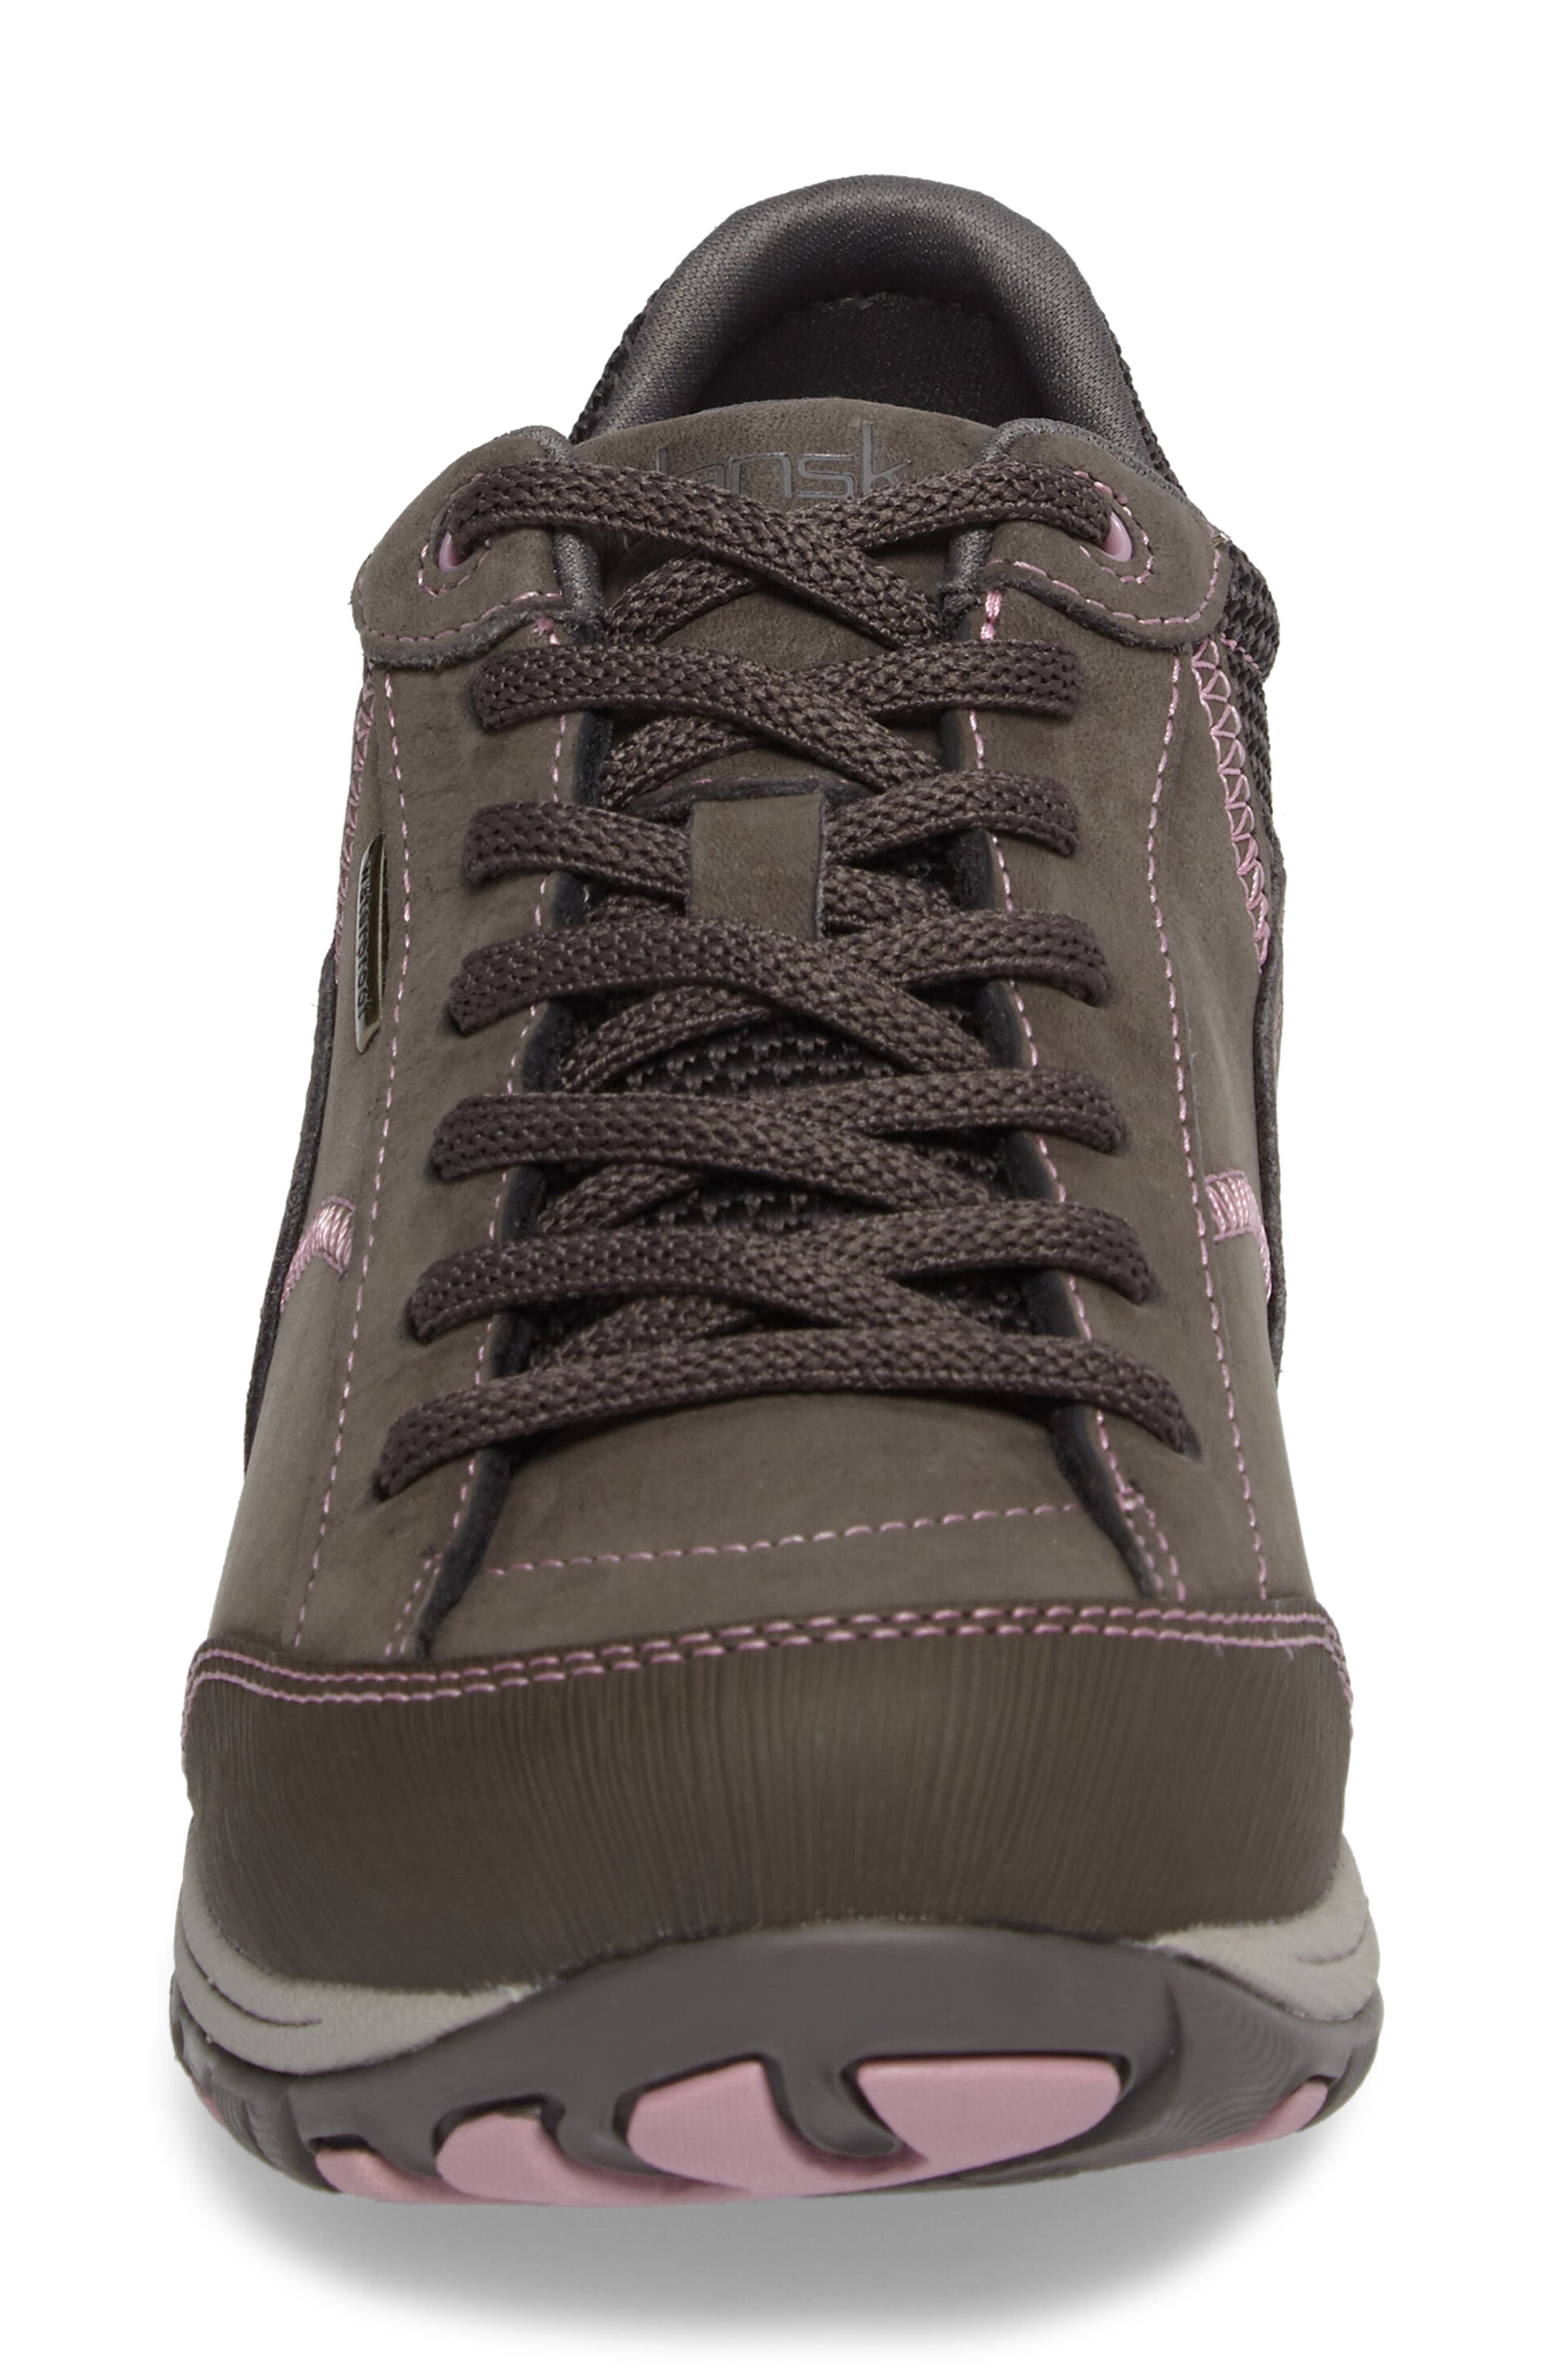 Alternate Image 4  - Dansko 'Paisley' Waterproof Sneaker (Women)